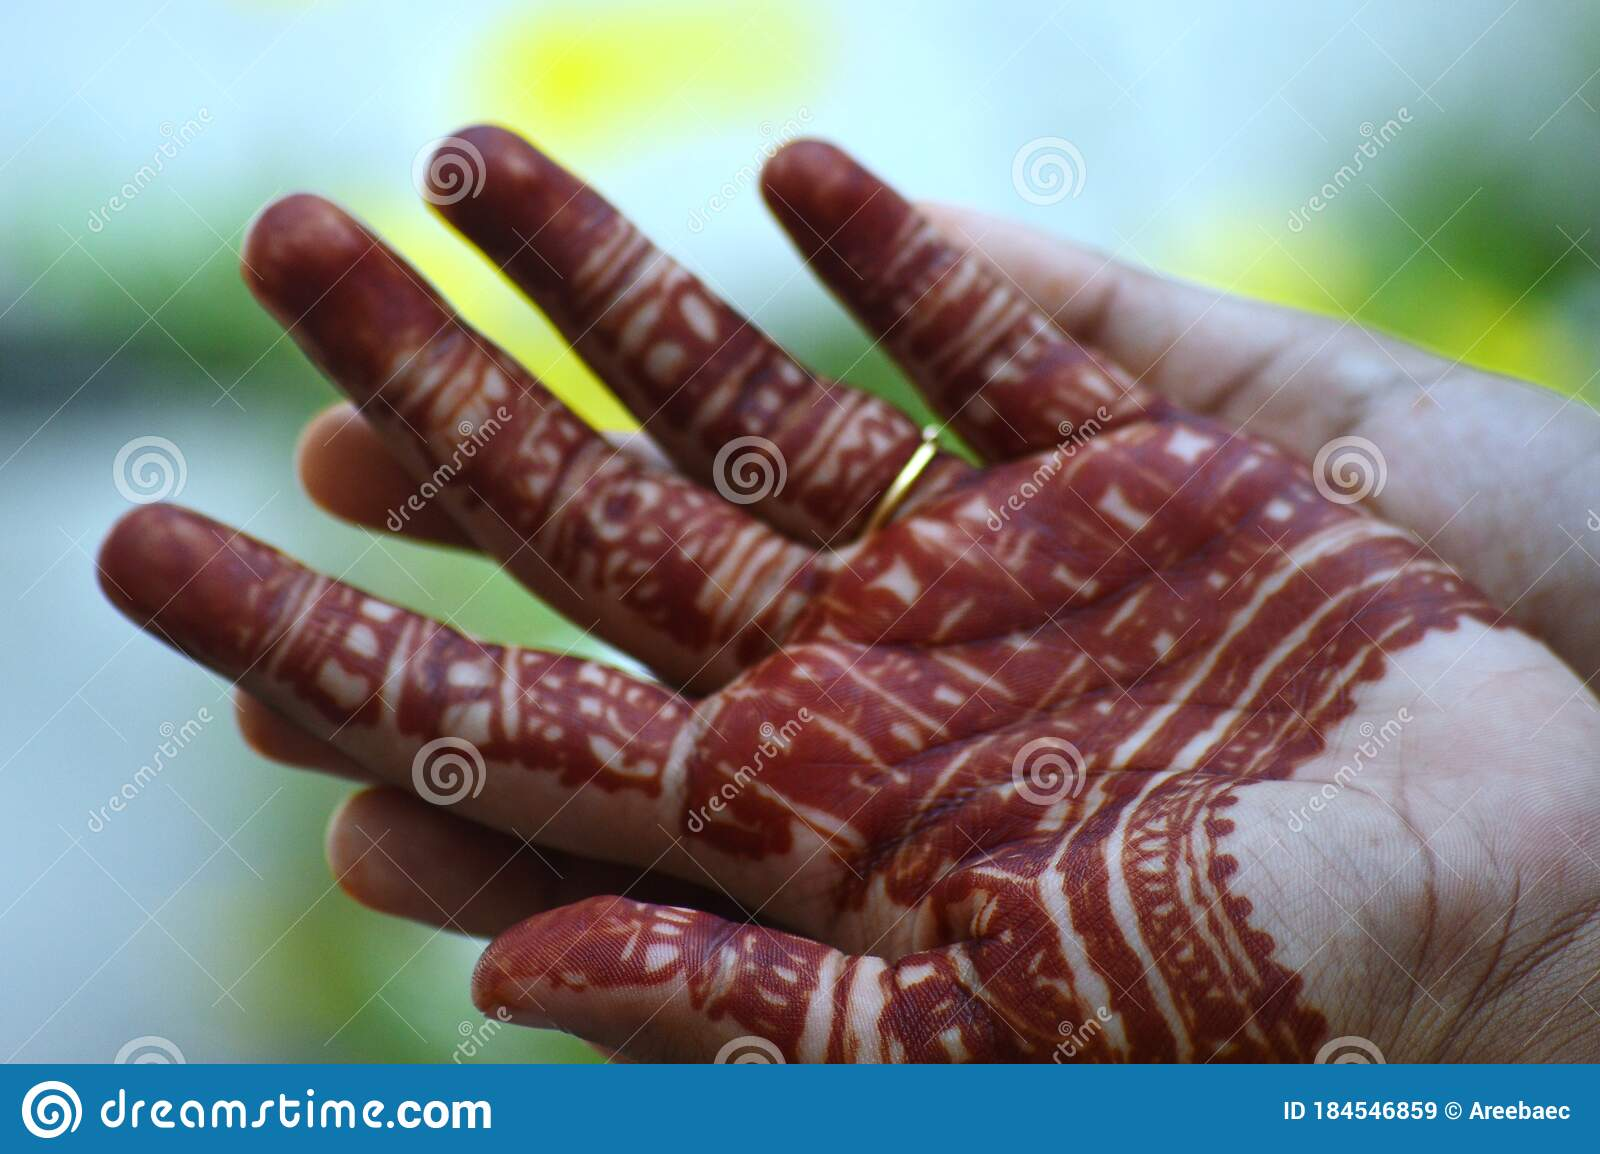 Mehandhi Application Is An Ancient Traditional Art Of India It Is A Body Art It Last For About Two Weeks Stock Image Image Of Traditional Ancient 184546859